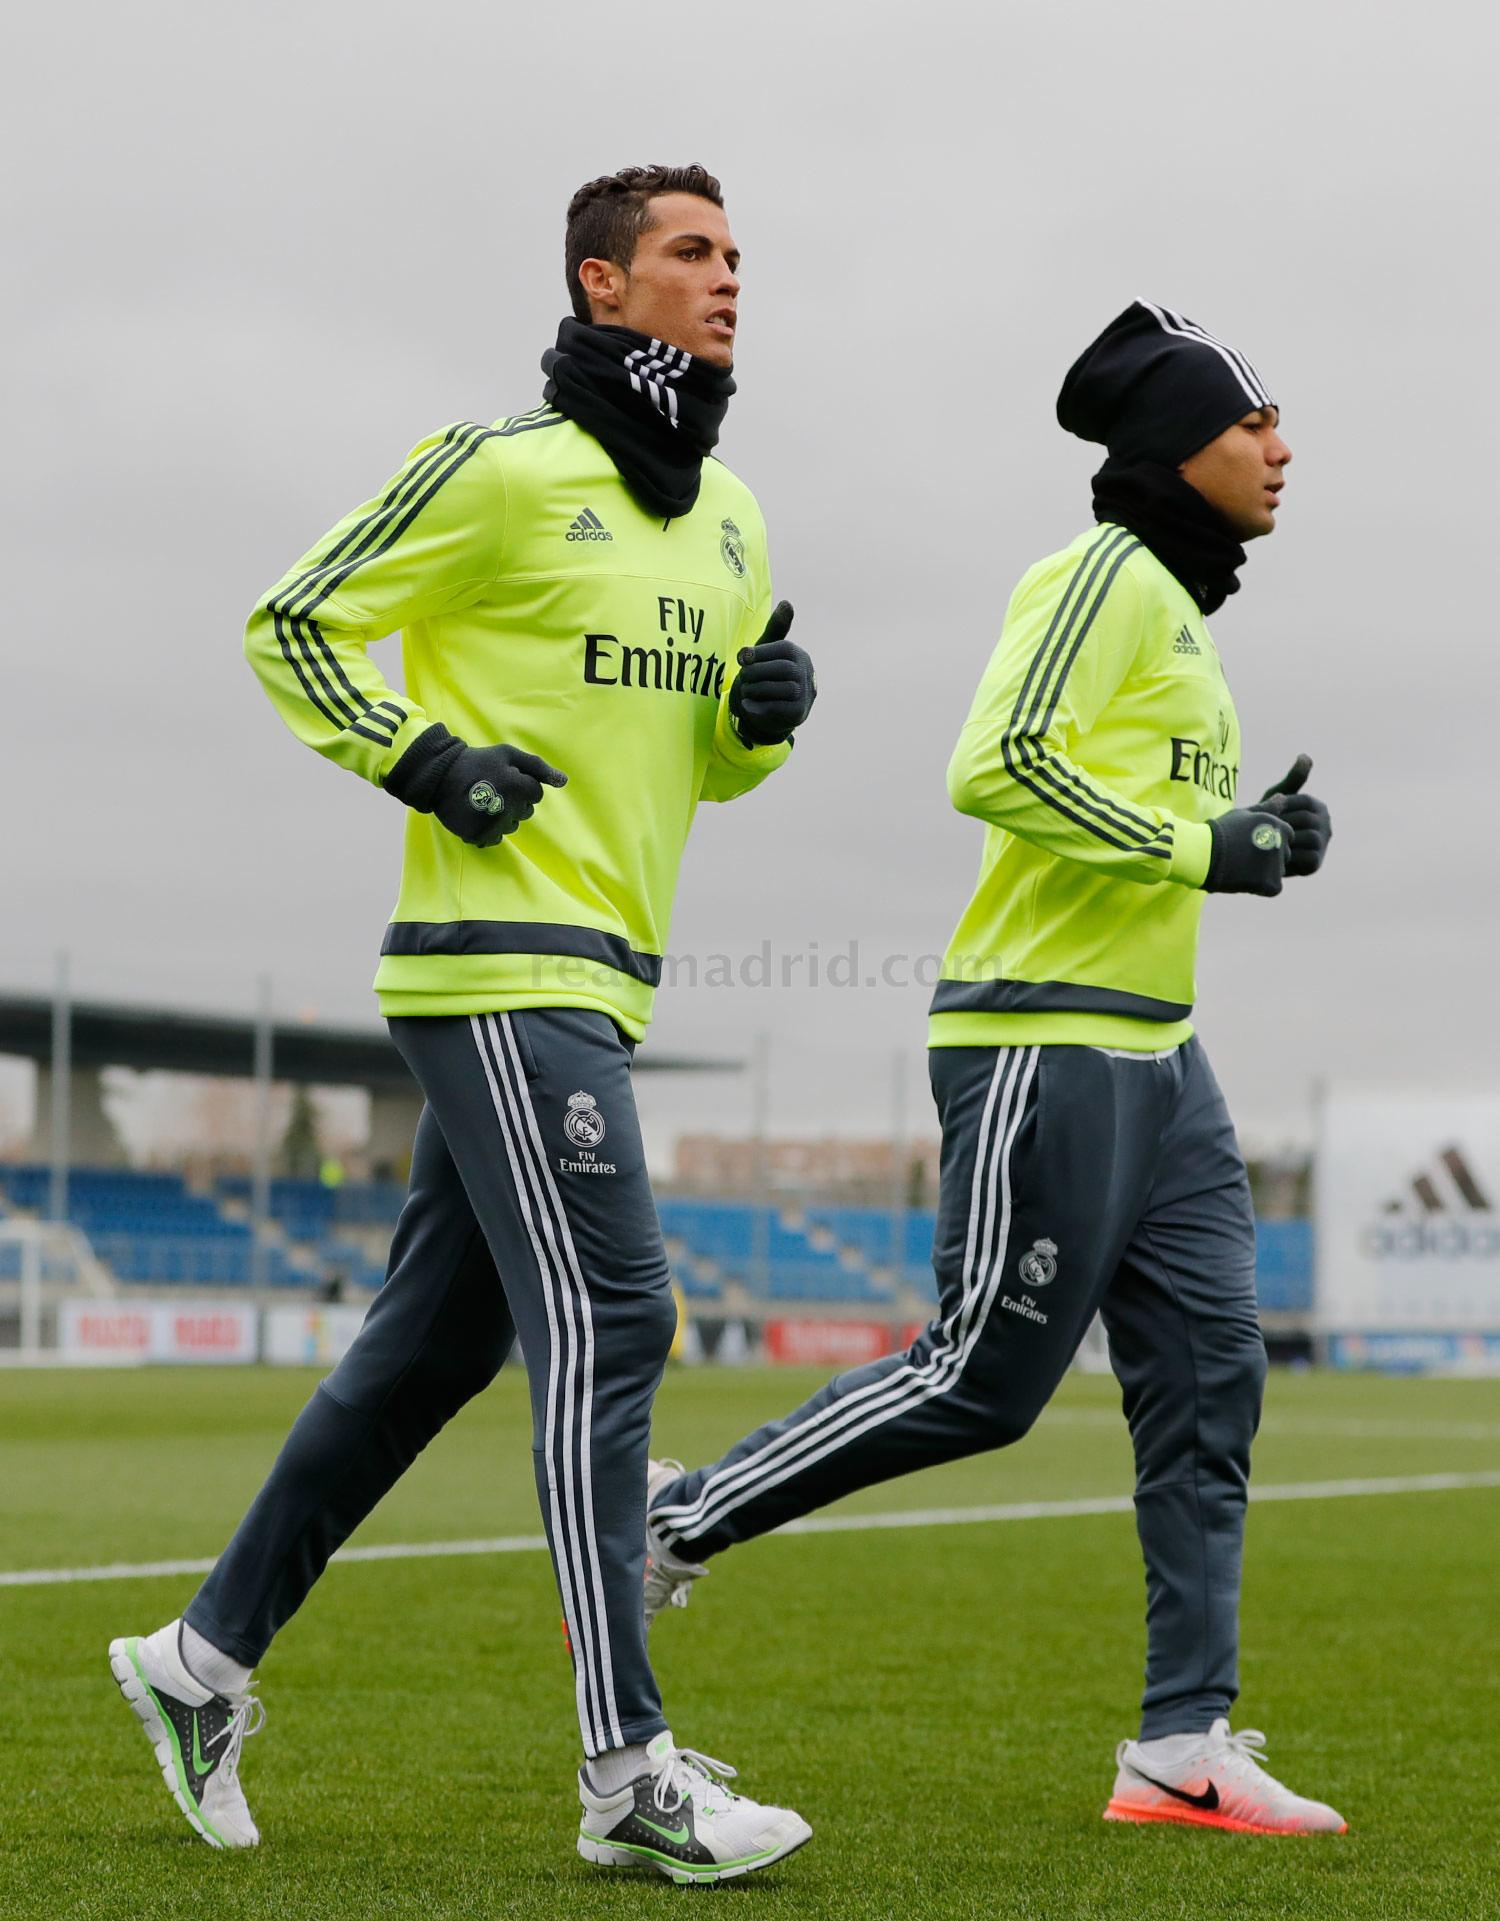 Real Madrid - Entrenamiento del Real Madrid - 09-02-2016